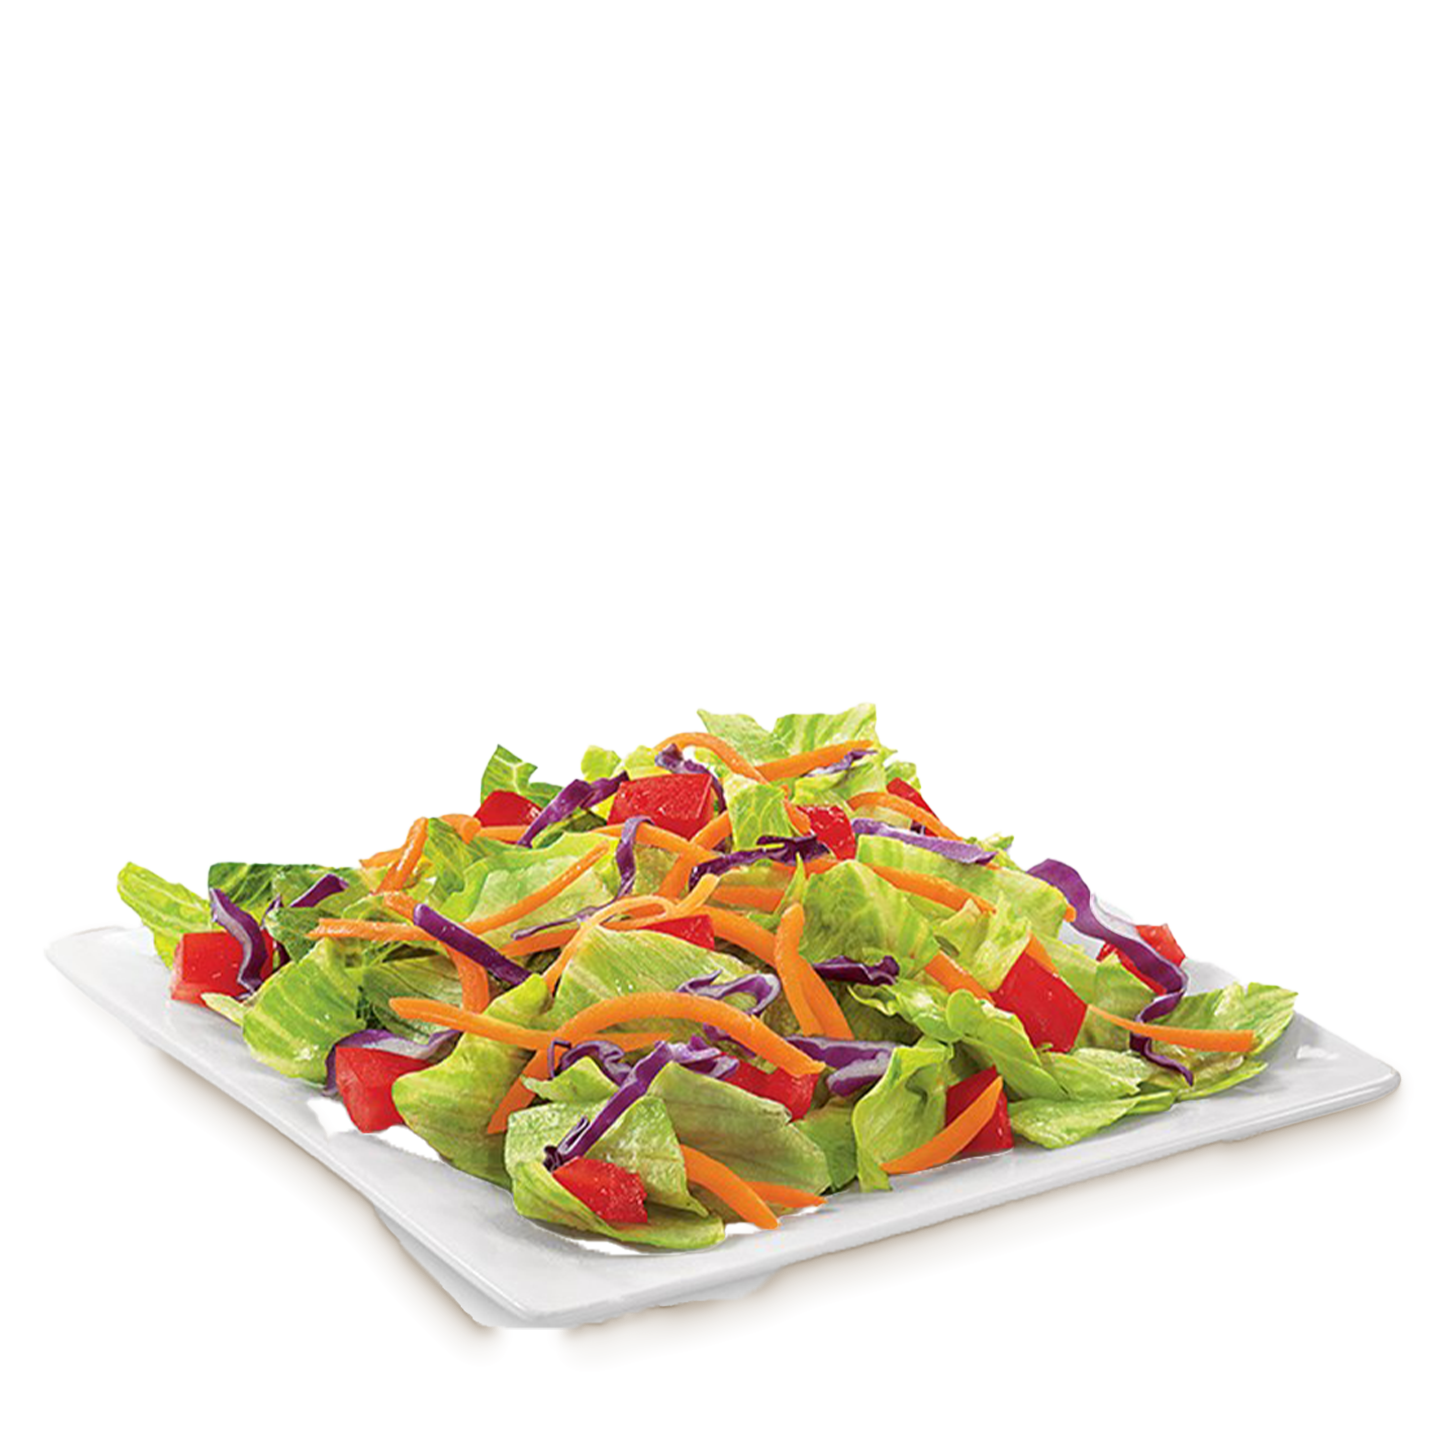 Side Salad on a white plate